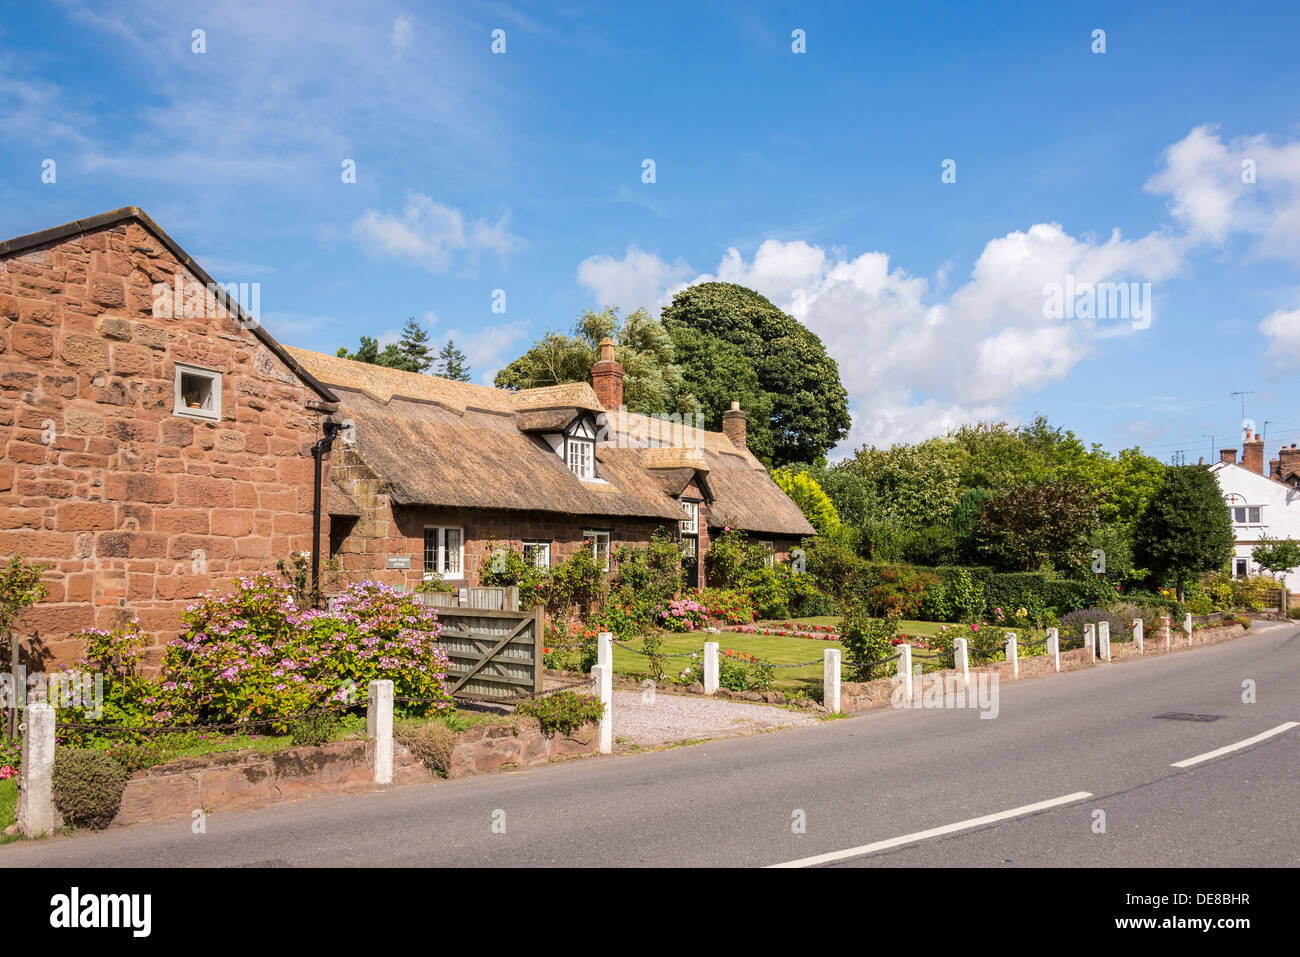 Burton a village on the Wirral Peninsula. Thatched cottage. House name is Bishop Wilson's Cottage. - Stock Image